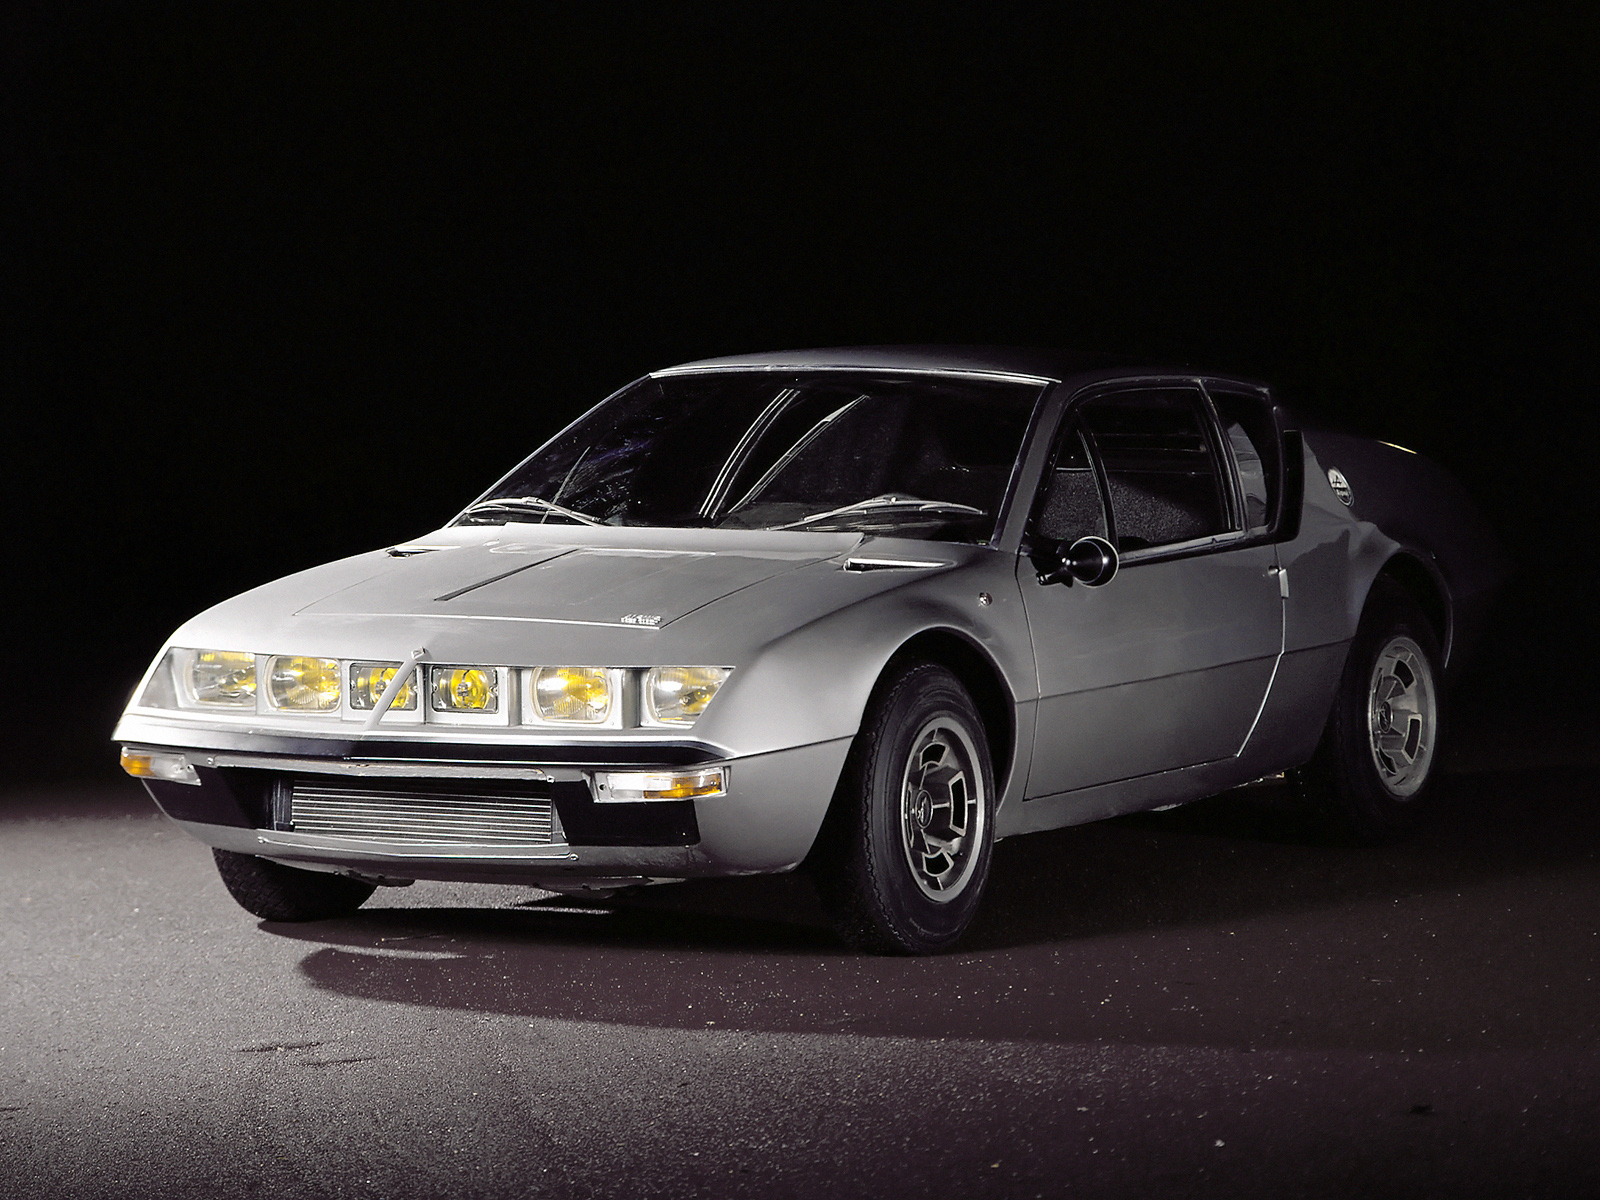 1971 renault alpine a310 supercar classic d wallpaper. Black Bedroom Furniture Sets. Home Design Ideas